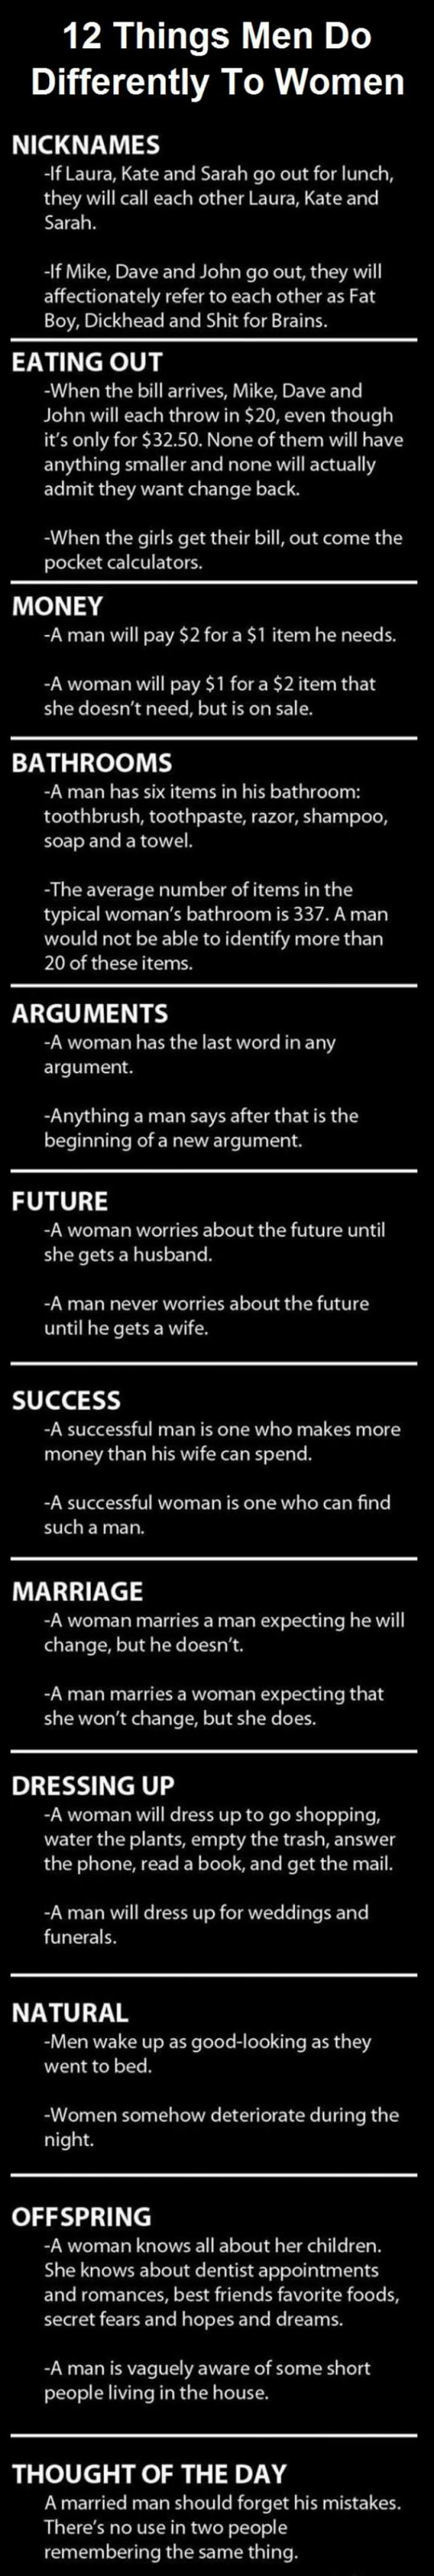 A Few Things Men Do Differently To Women